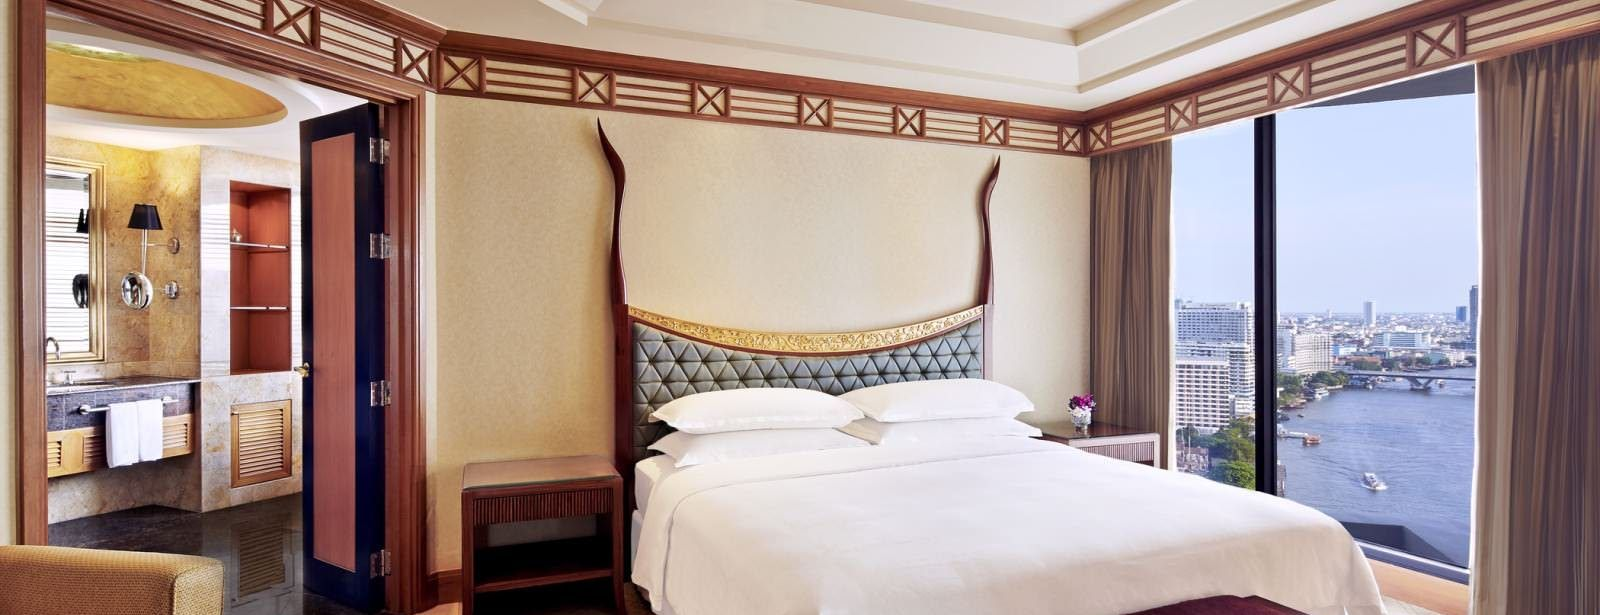 Royal Orchid Presidential Suite - Bedroom - Royal Orchid Sheraton Hotel Bangkok